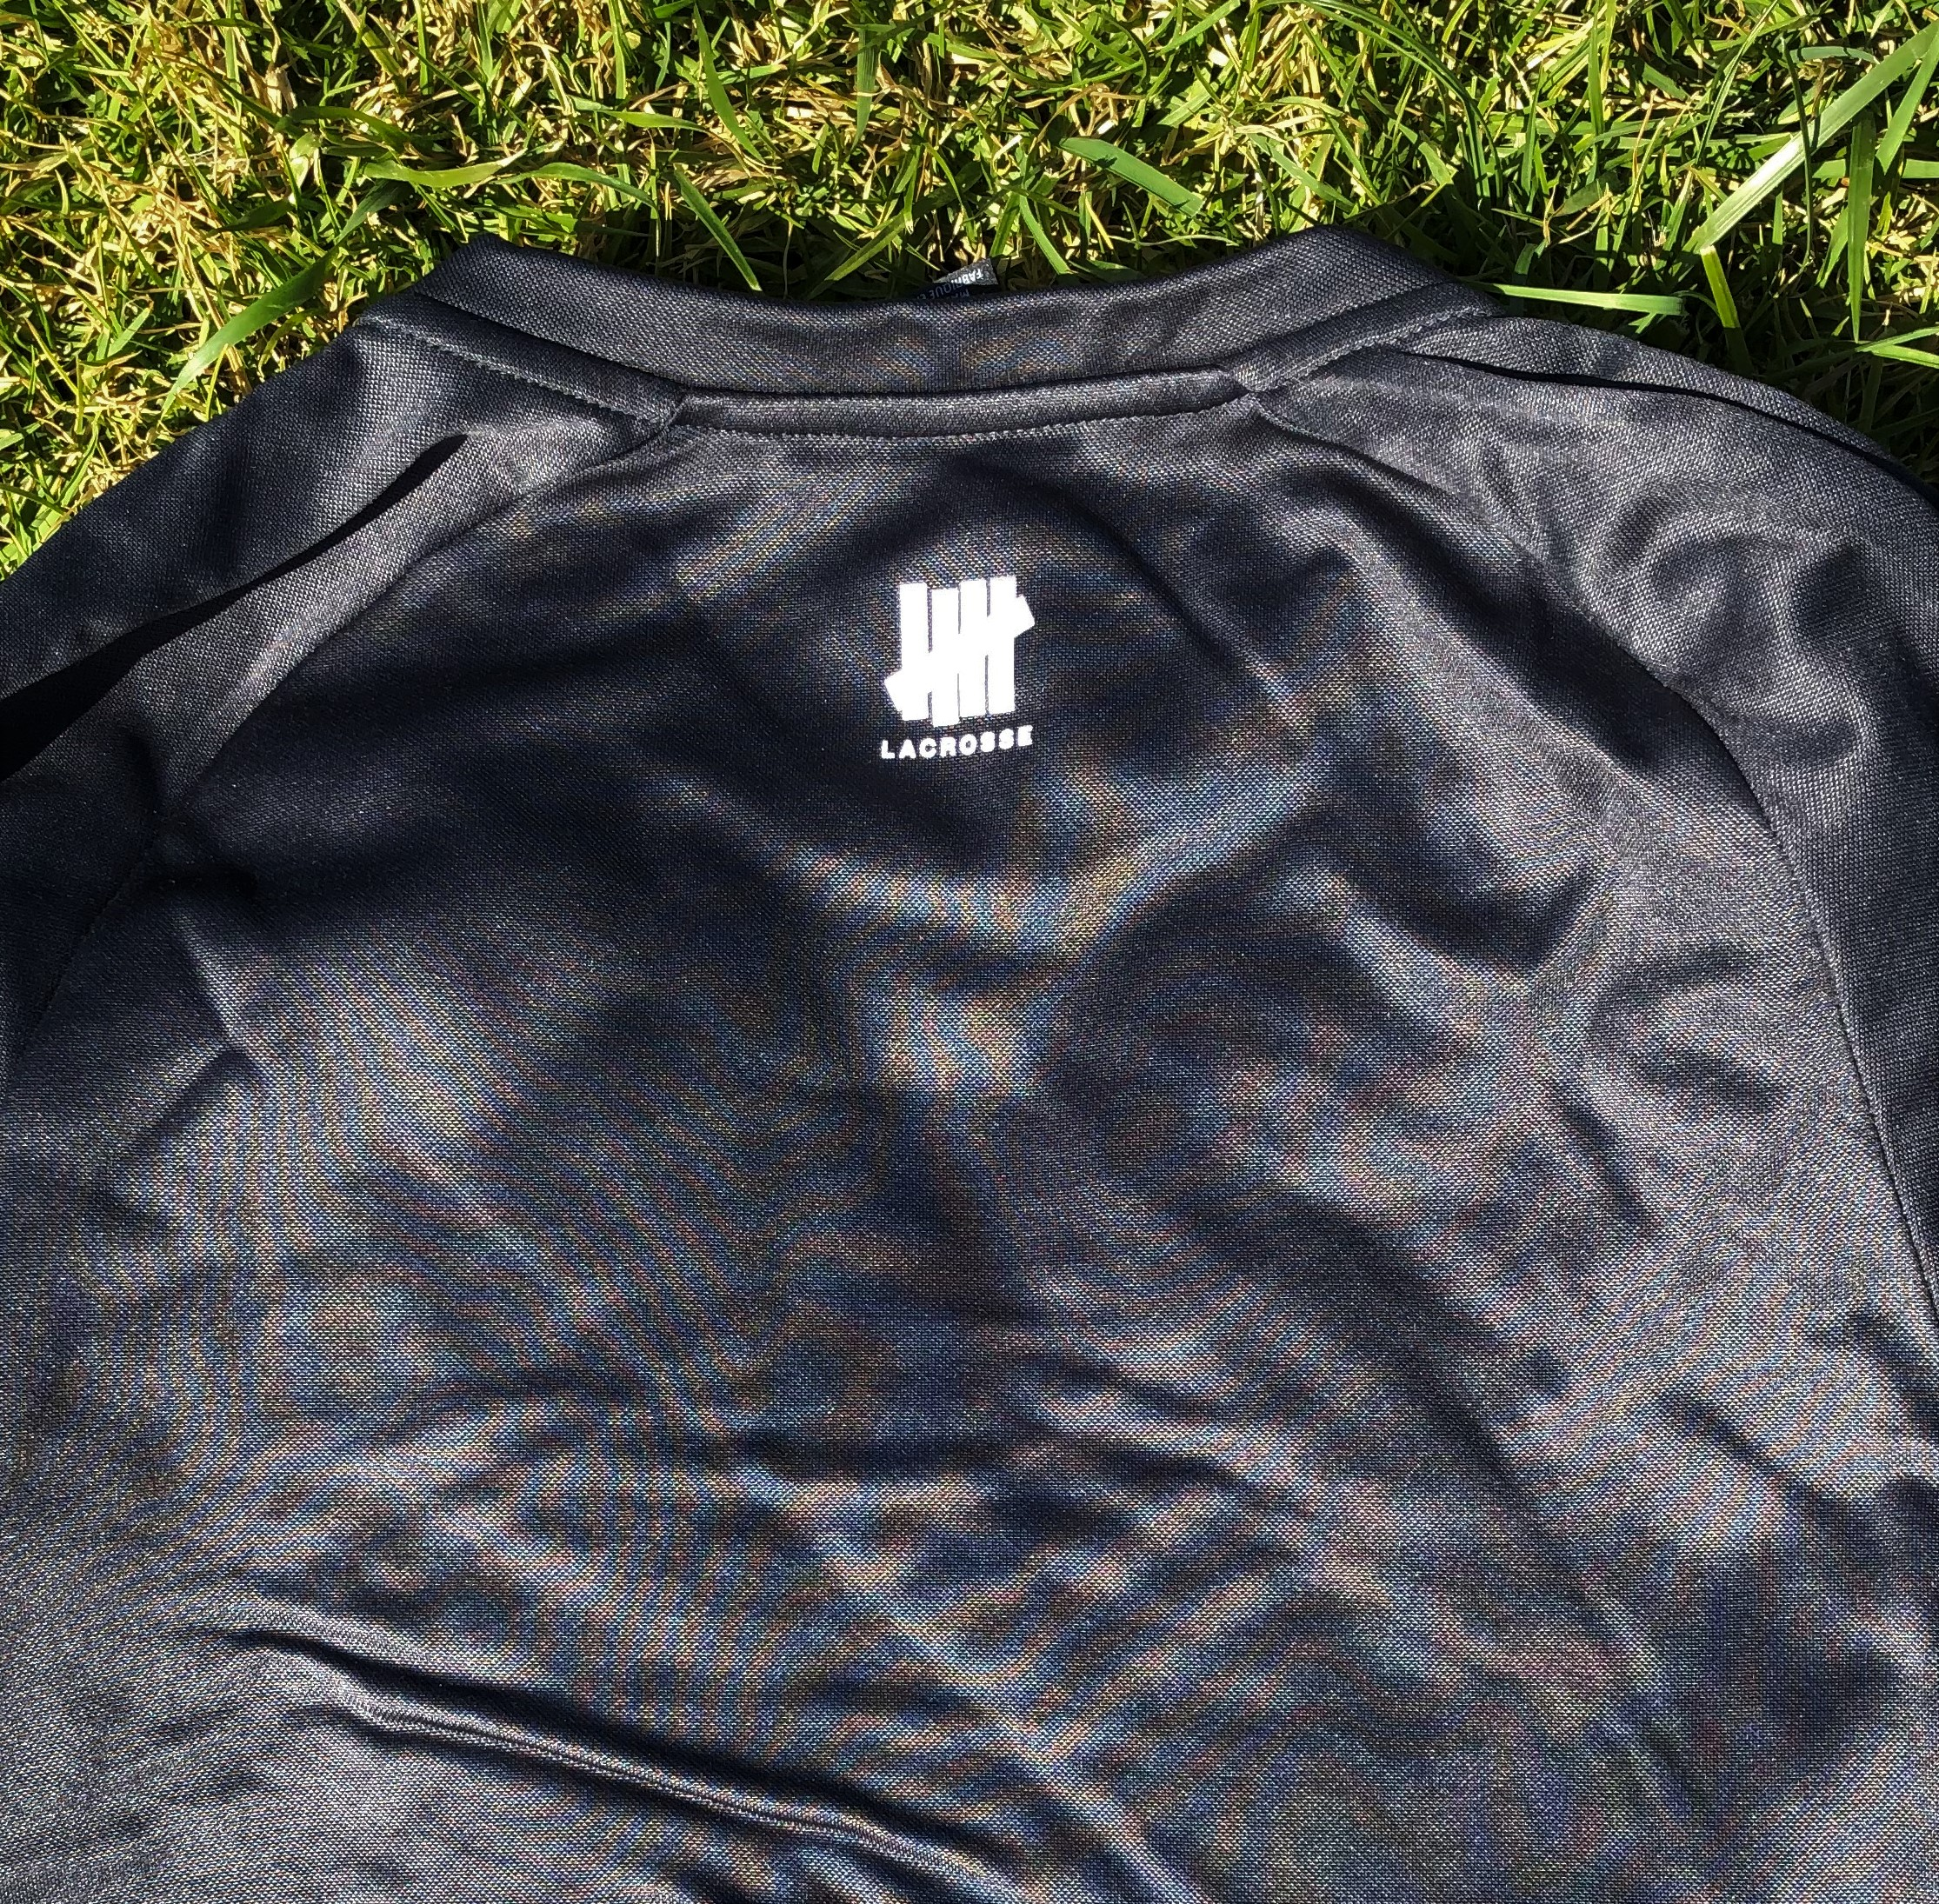 grey shirt back with roman numeral